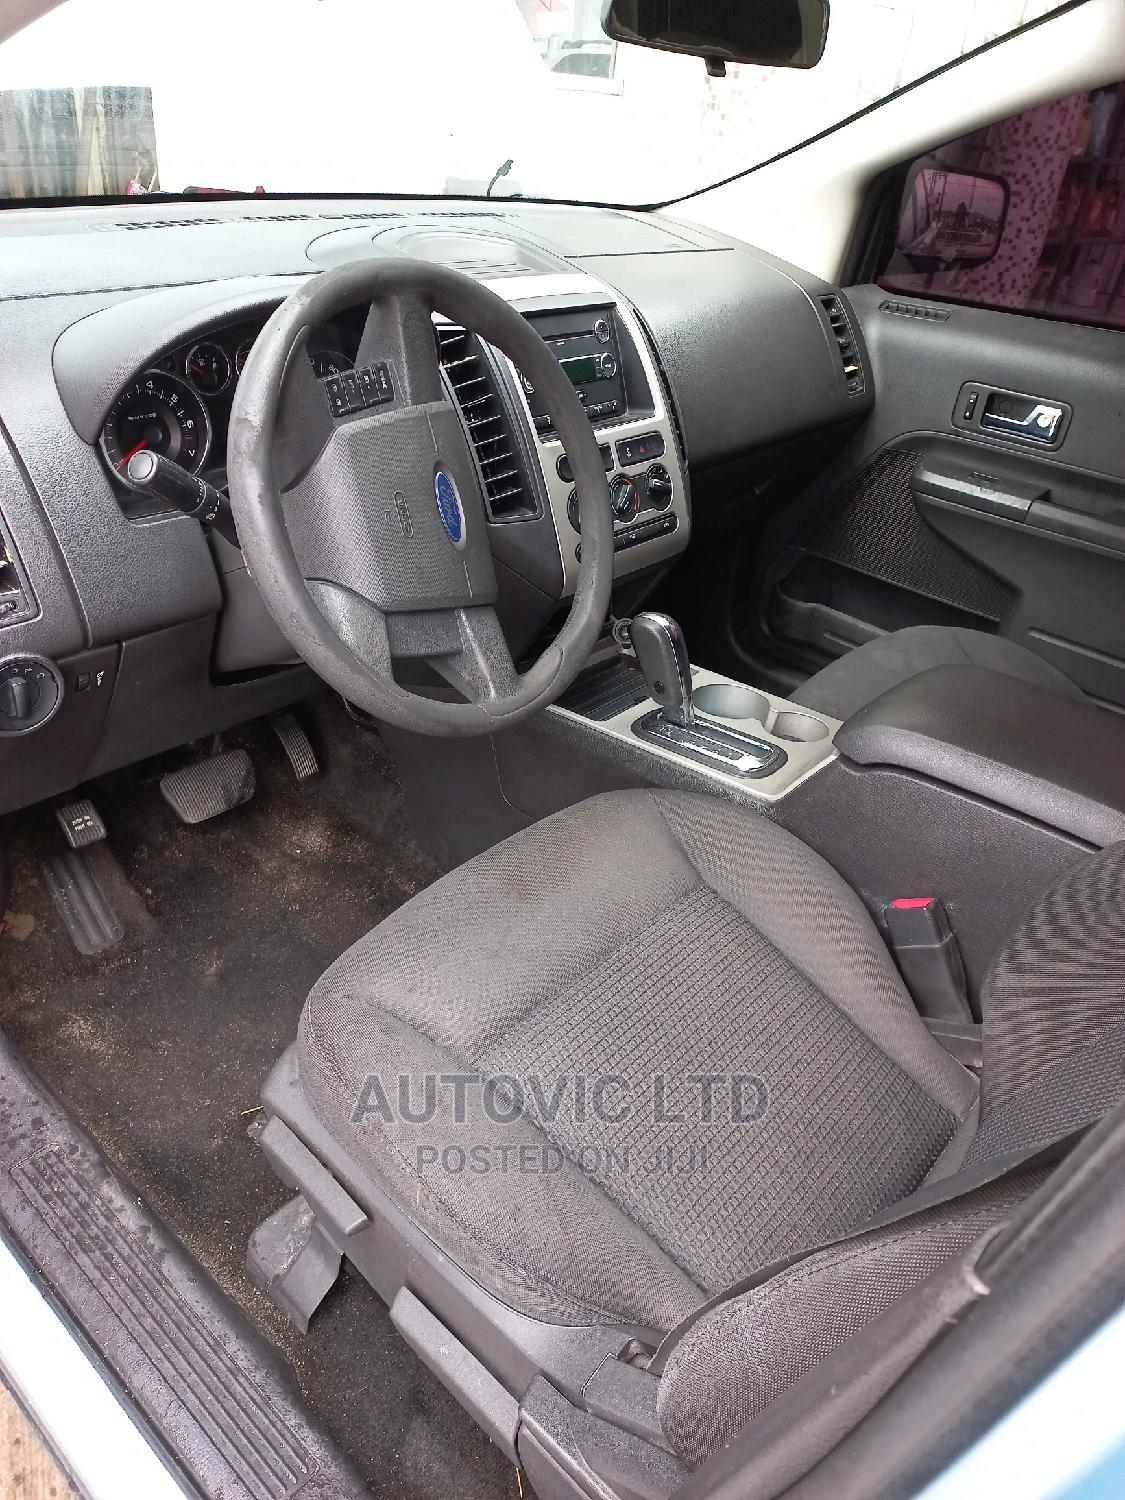 Ford Edge 2008 SE 4dr FWD (3.5L 6cyl 6A) Blue   Cars for sale in Ajah, Lagos State, Nigeria